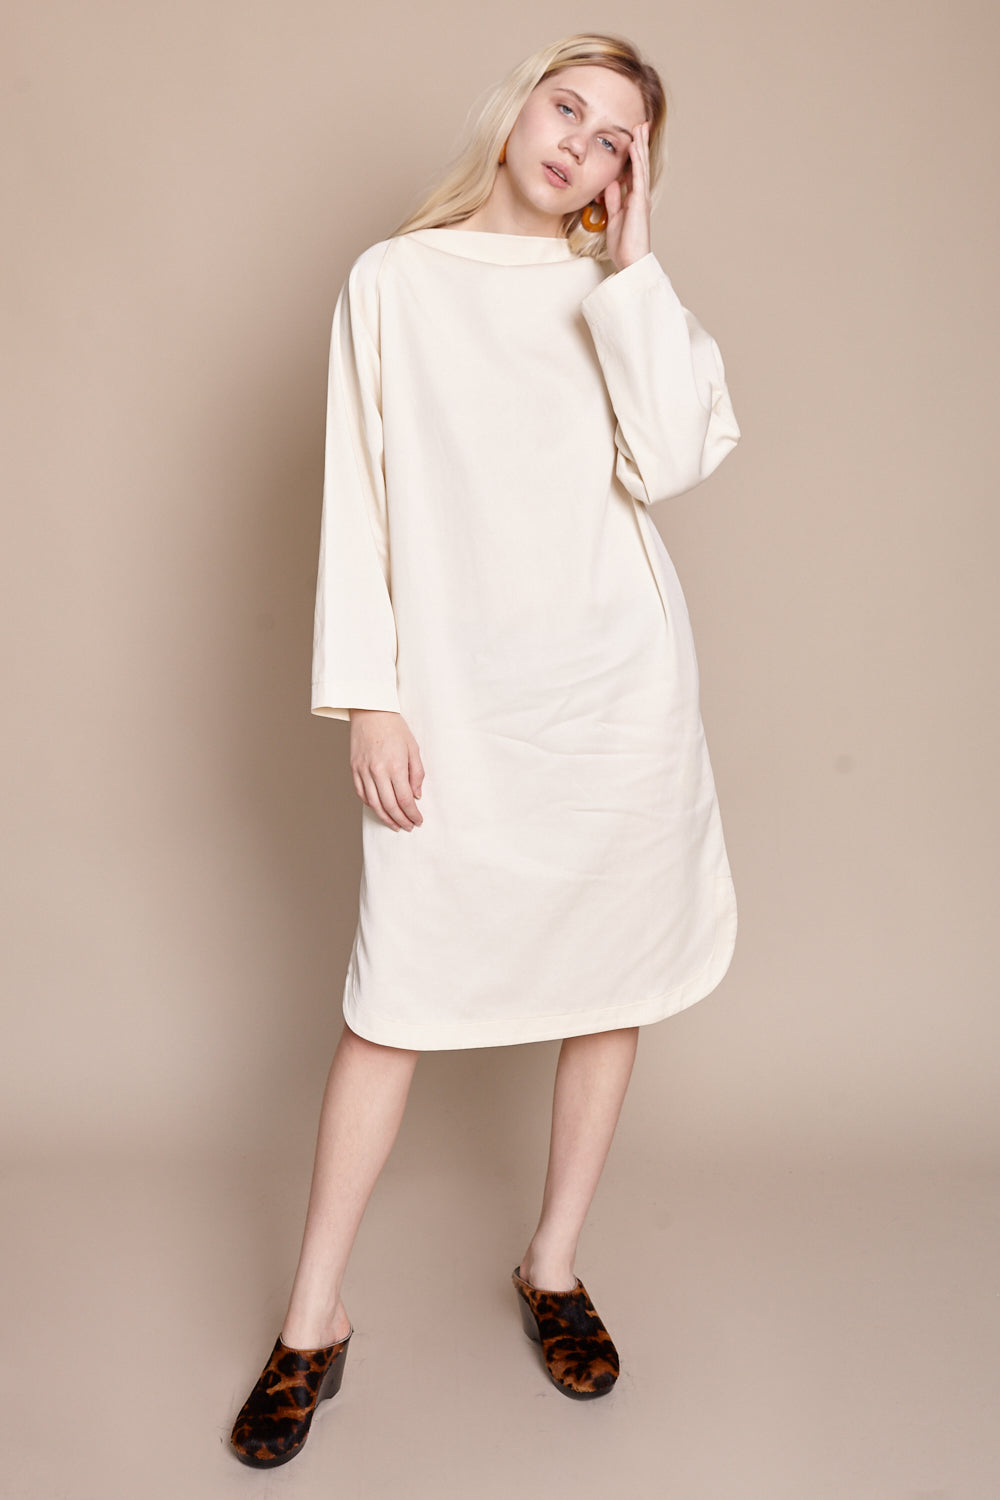 Folded Neck Dress